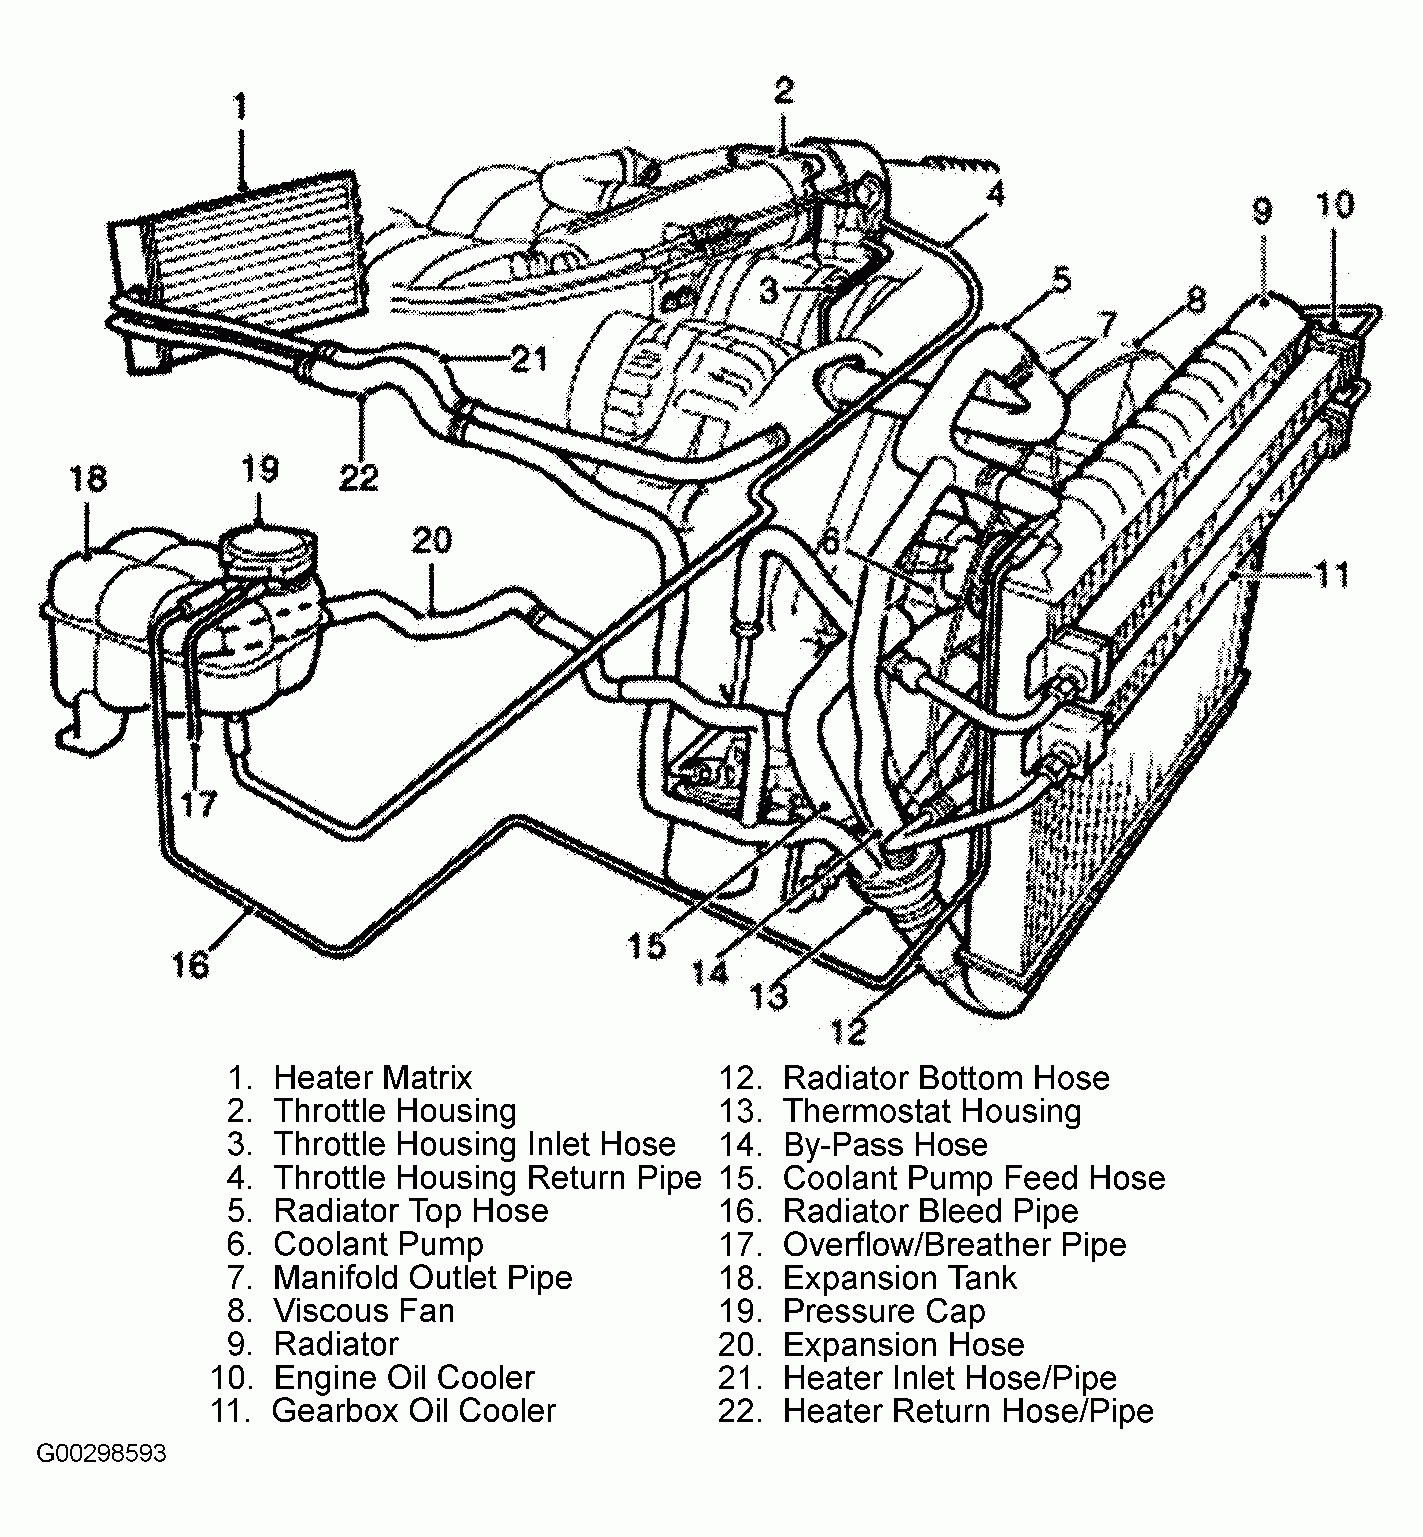 2003 lincoln ls v8 engine diagram how to install replace